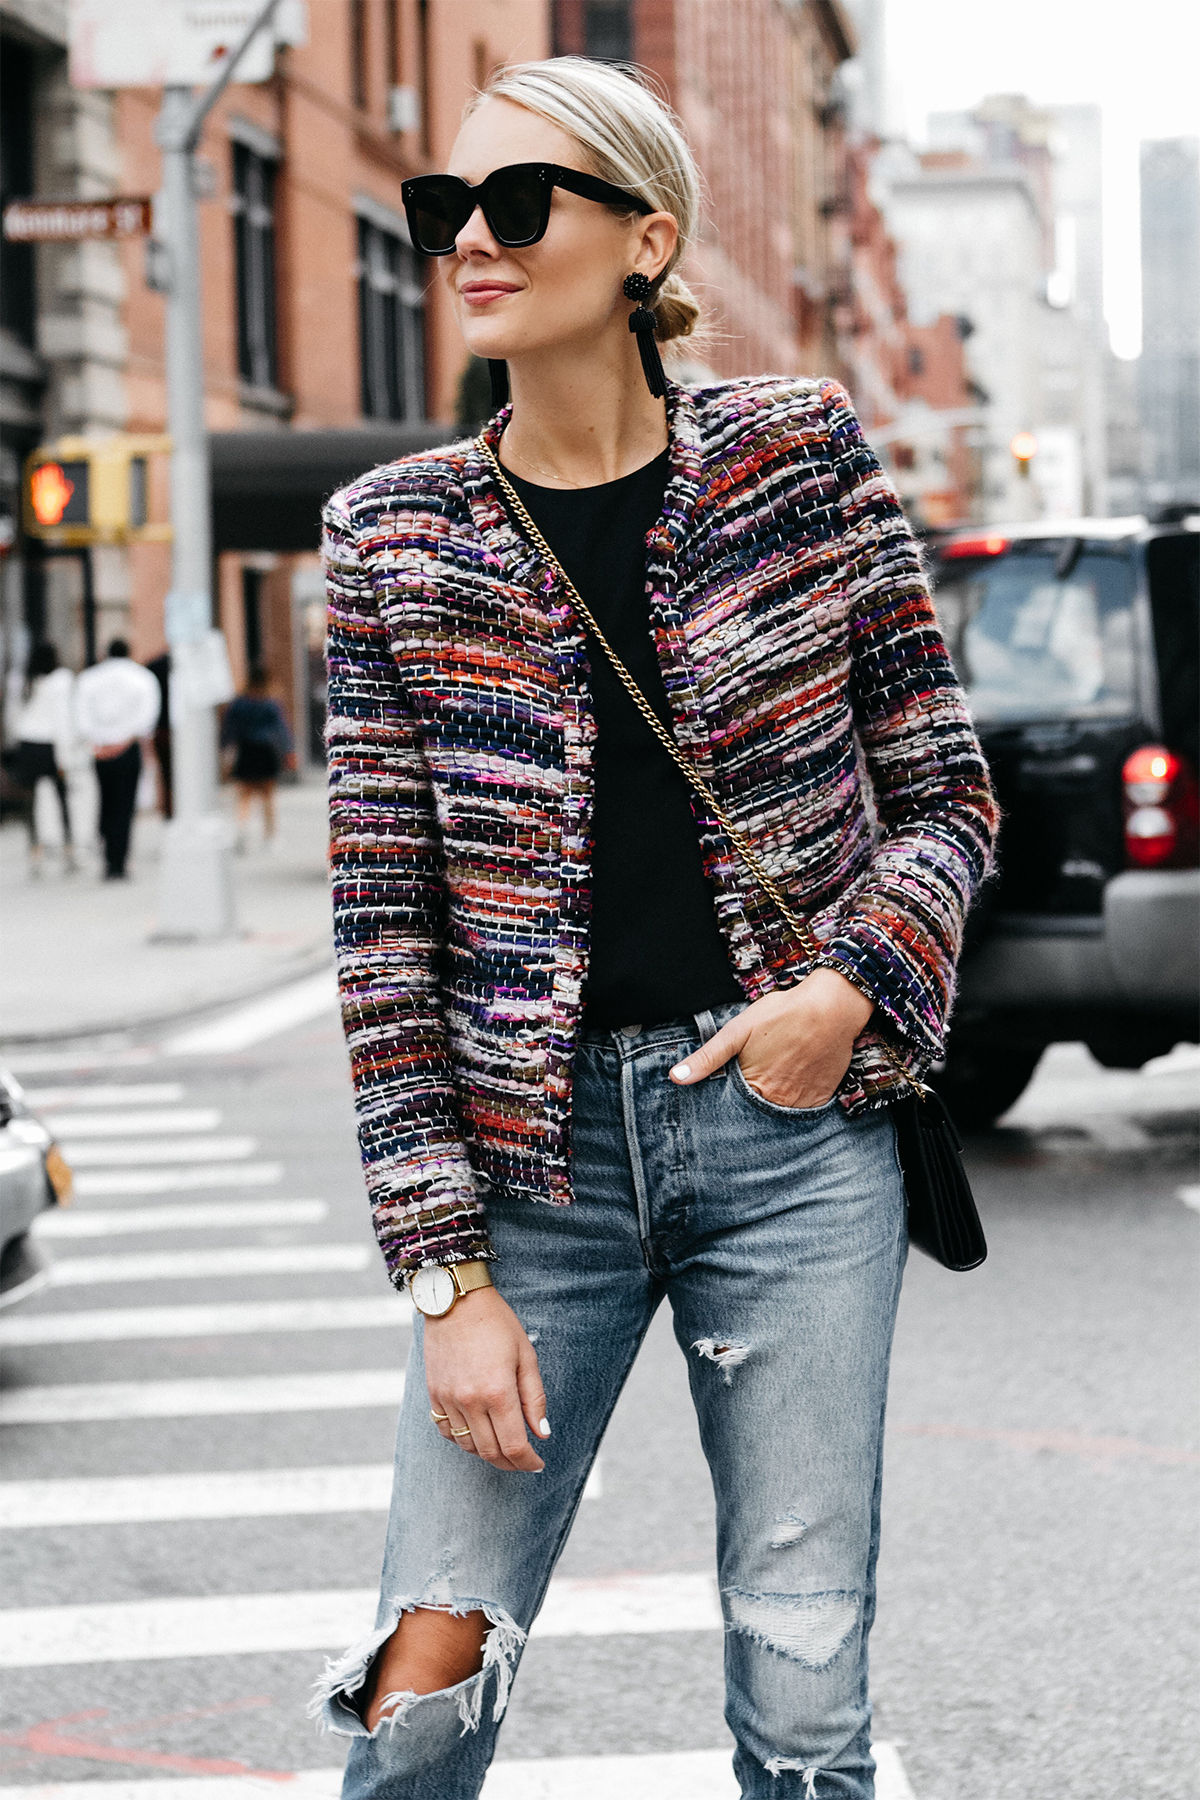 Blonde Woman Wearing IRO Multicolored Tweed Jacket Denim Ripped Jeans Fashion Jackson Dallas Blogger Fashion Blogger Street Style